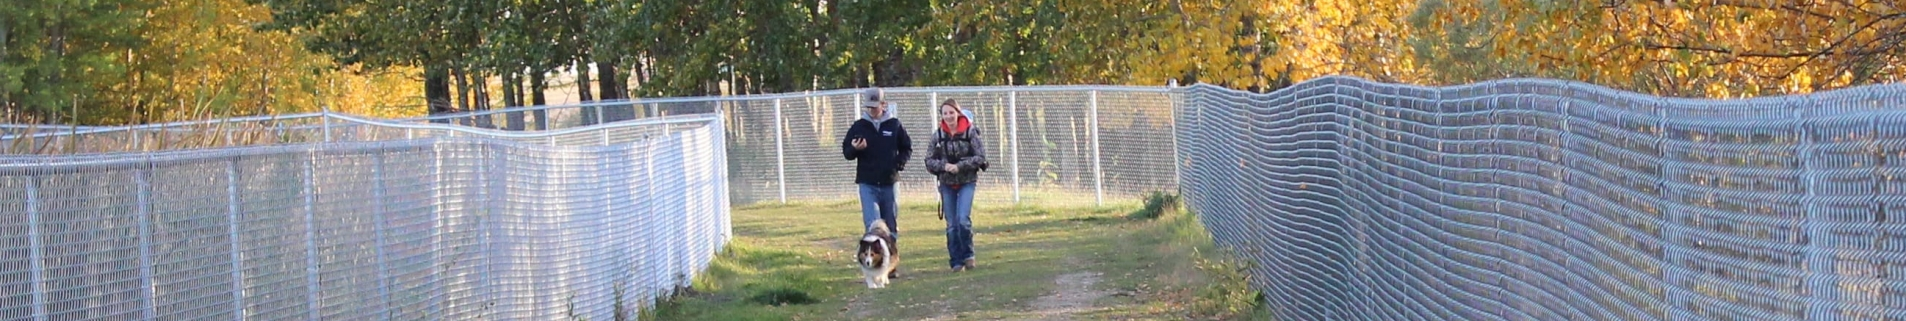 Couple walking with small dog in a fenced off dog-run